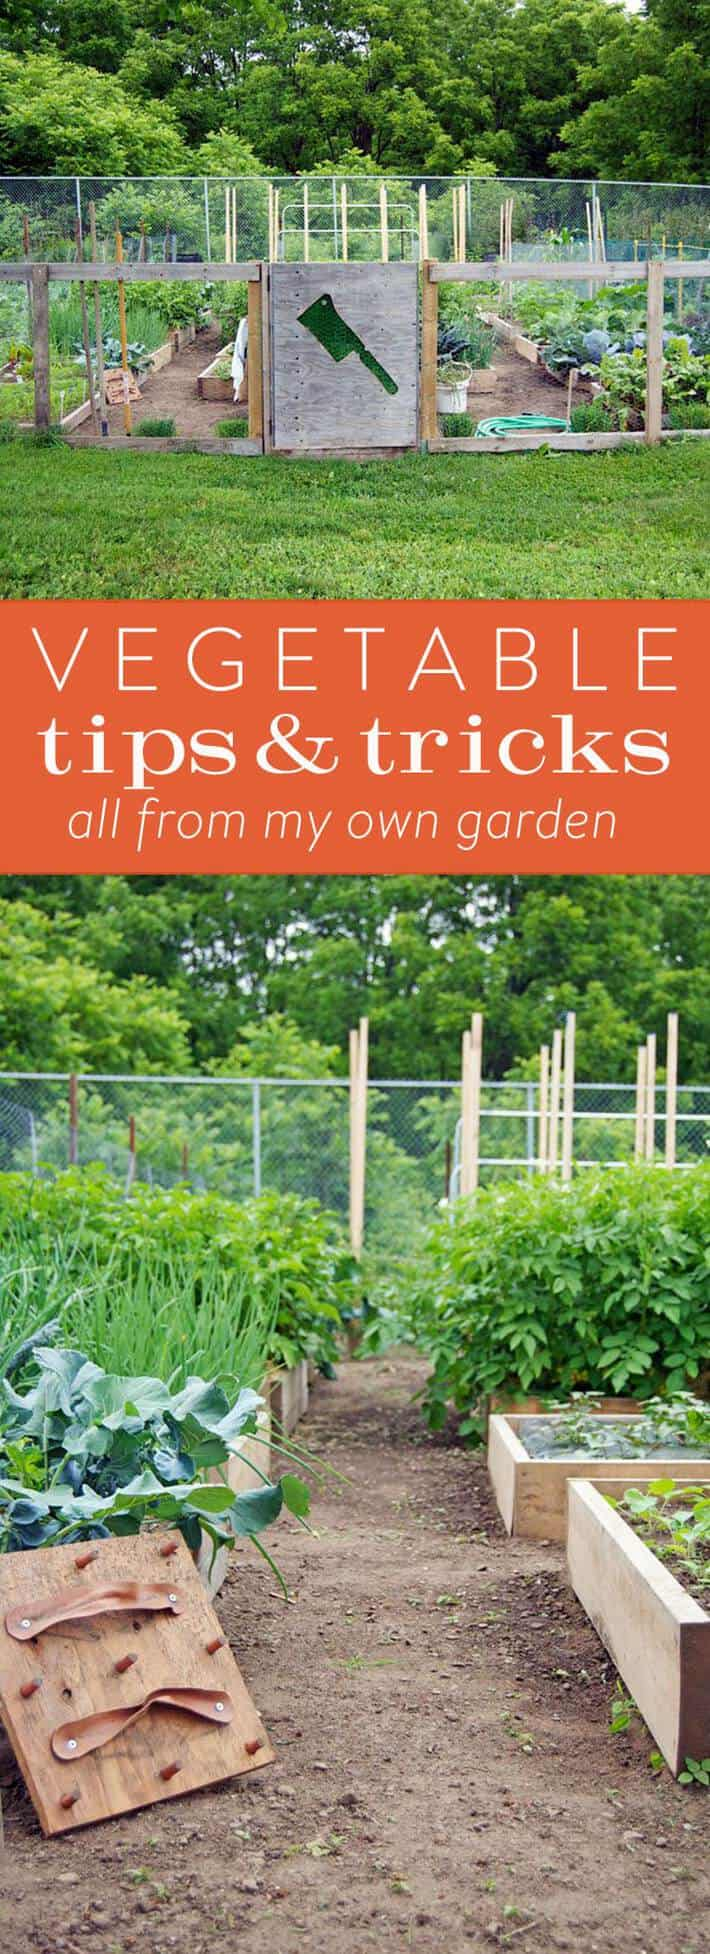 Vegetable gardening tips from my own community garden allotment.  A little DIY, a few tricks and a lot of info!